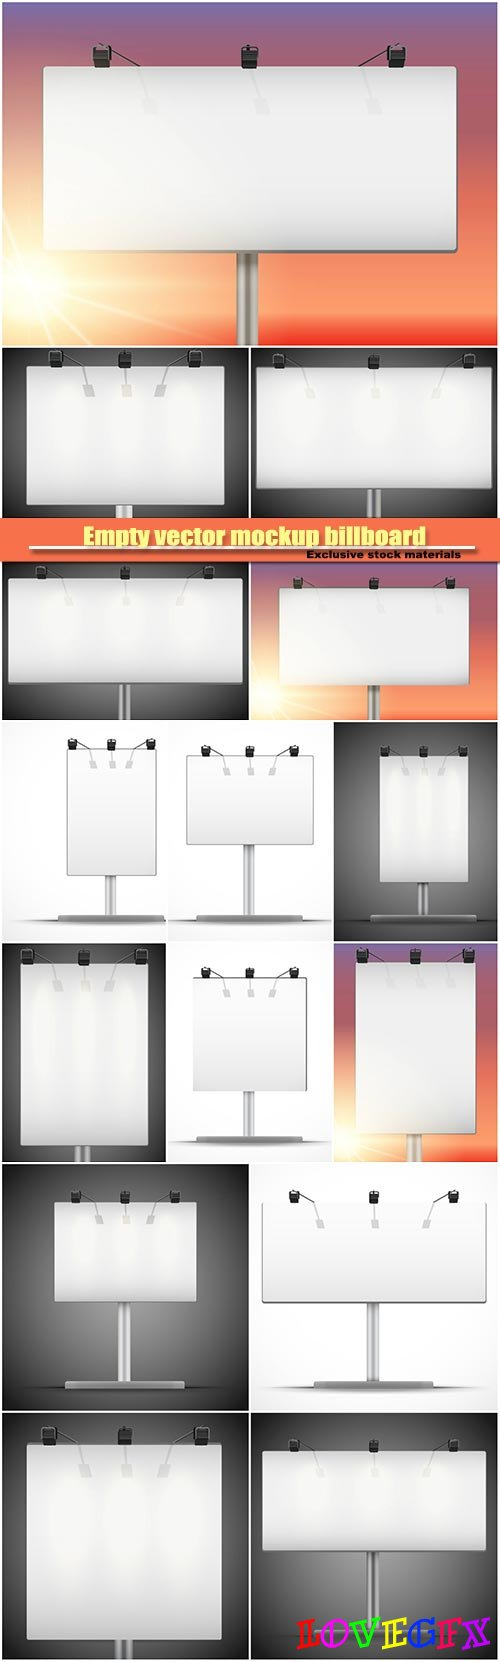 Empty vector mockup billboard with spotlights and illuminated